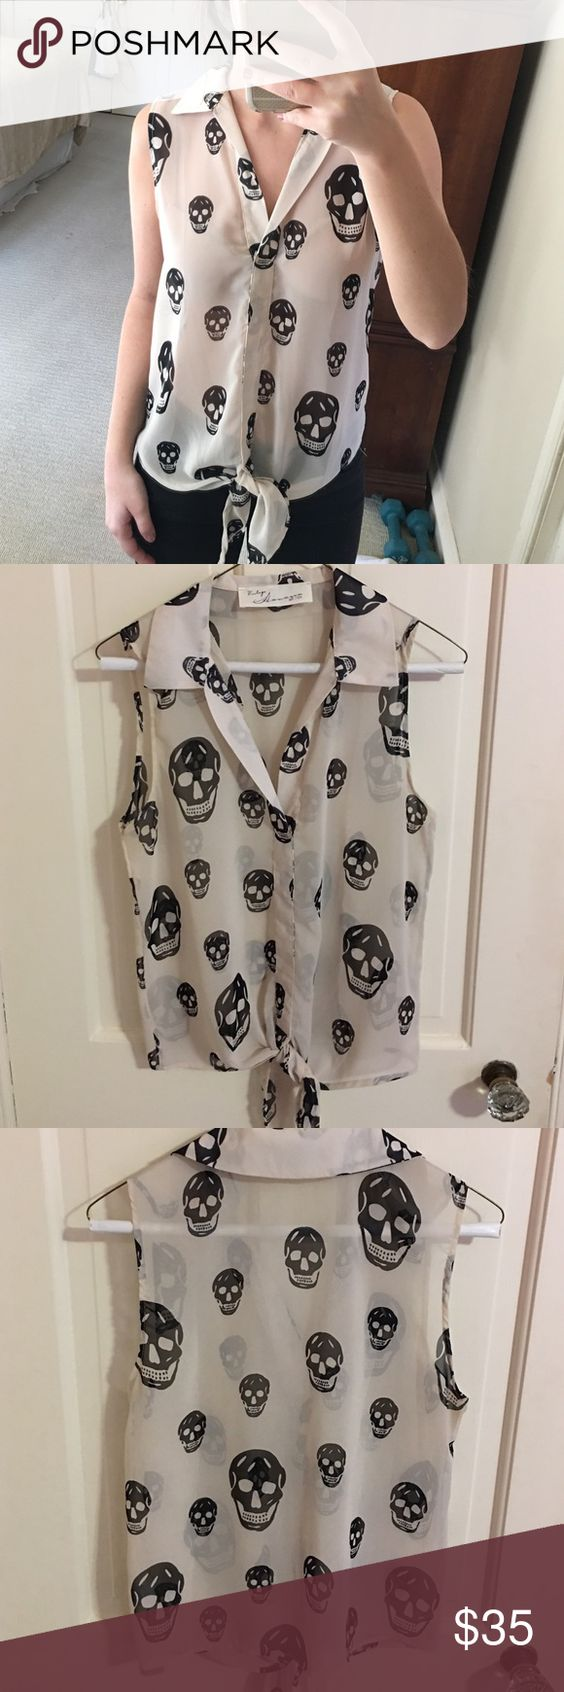 Vintage Havana skull tie tank Great condition skill tie tank with no pulls or stains! The top doesn't have buttons, but skips over your head. Top doesn't have size on it, but fits like a small! Vintage Havana Tops Blouses